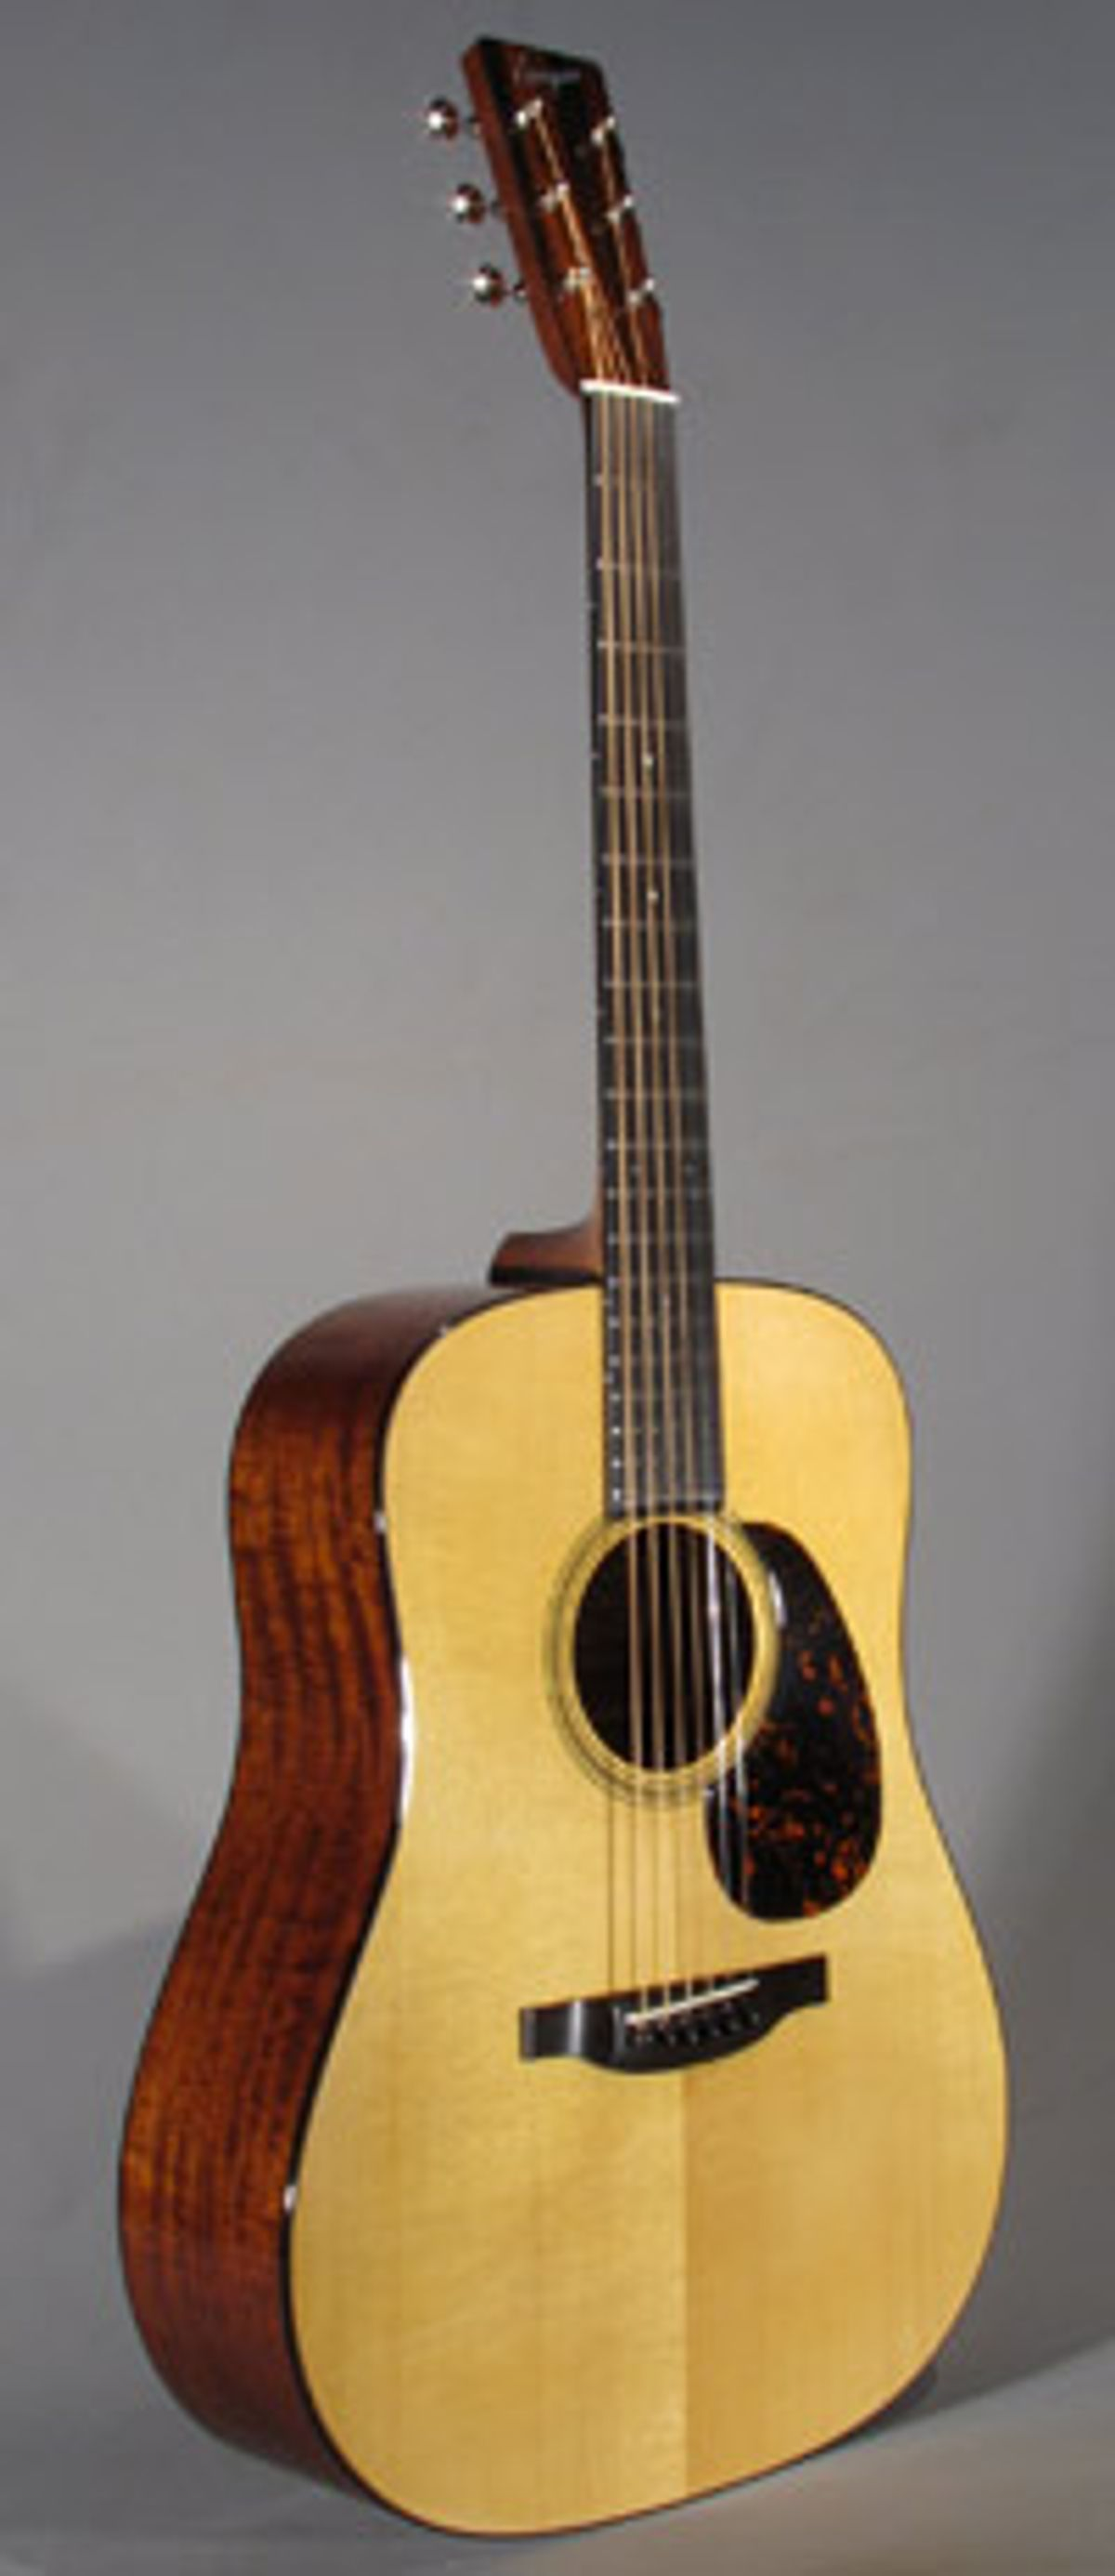 Bourgeois Introduces Very Vintage Mahogany Acoustic